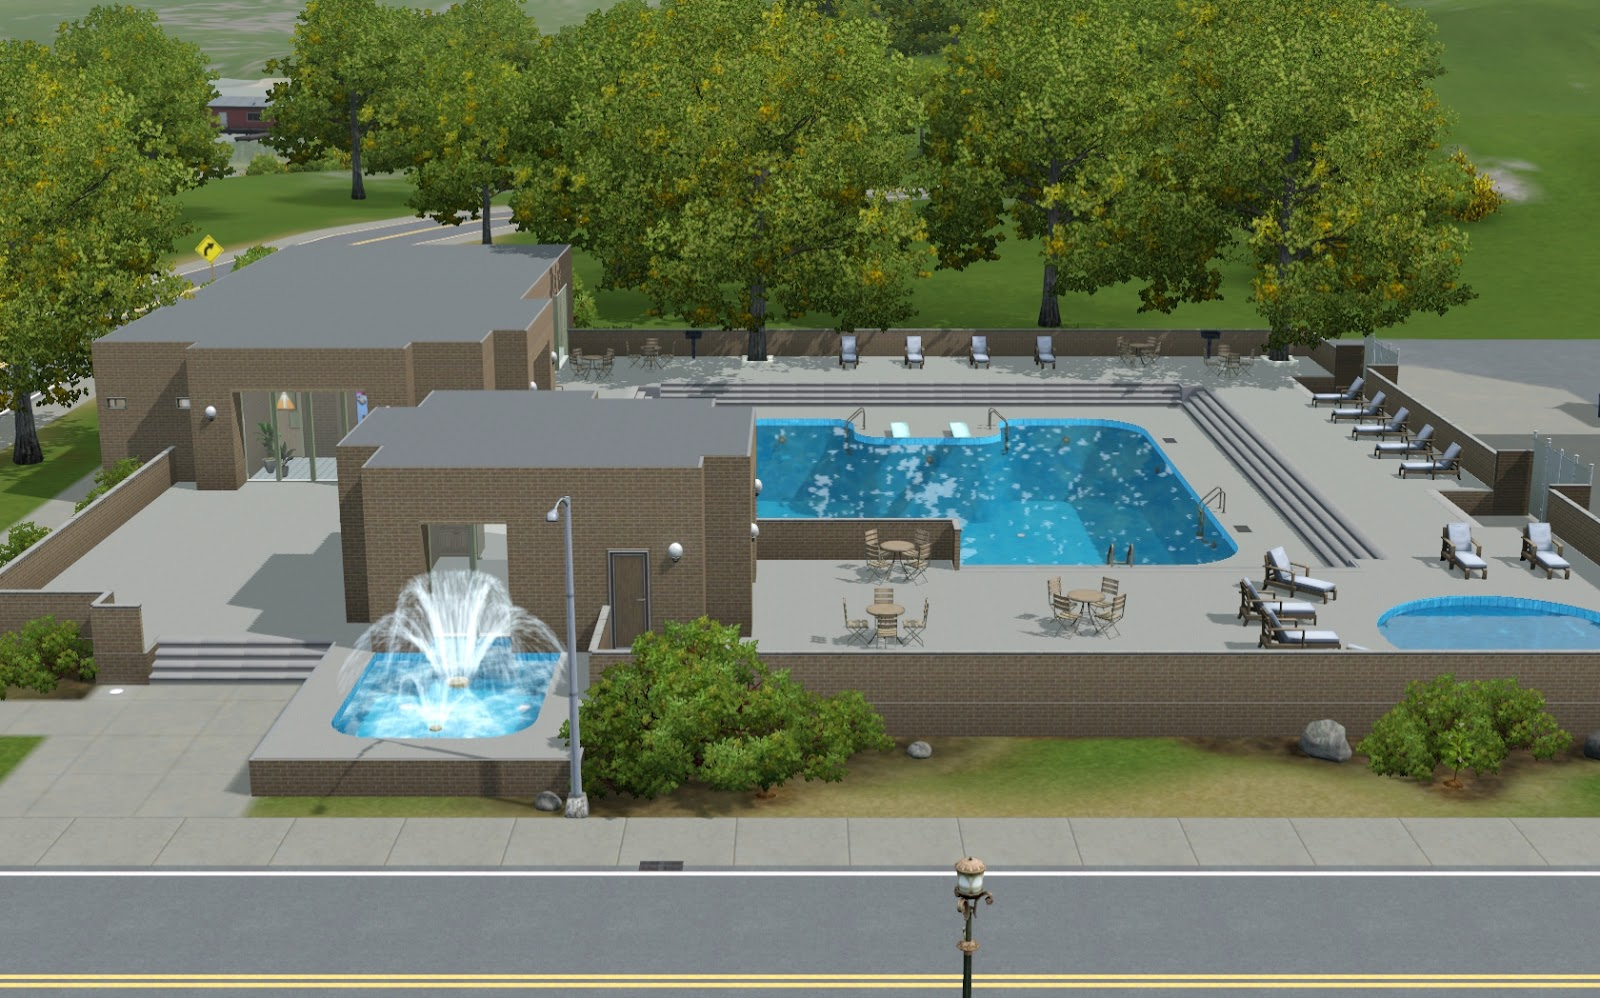 Summer 39 s little sims 3 garden sims university the sims 3 for Life of pi swimming pool